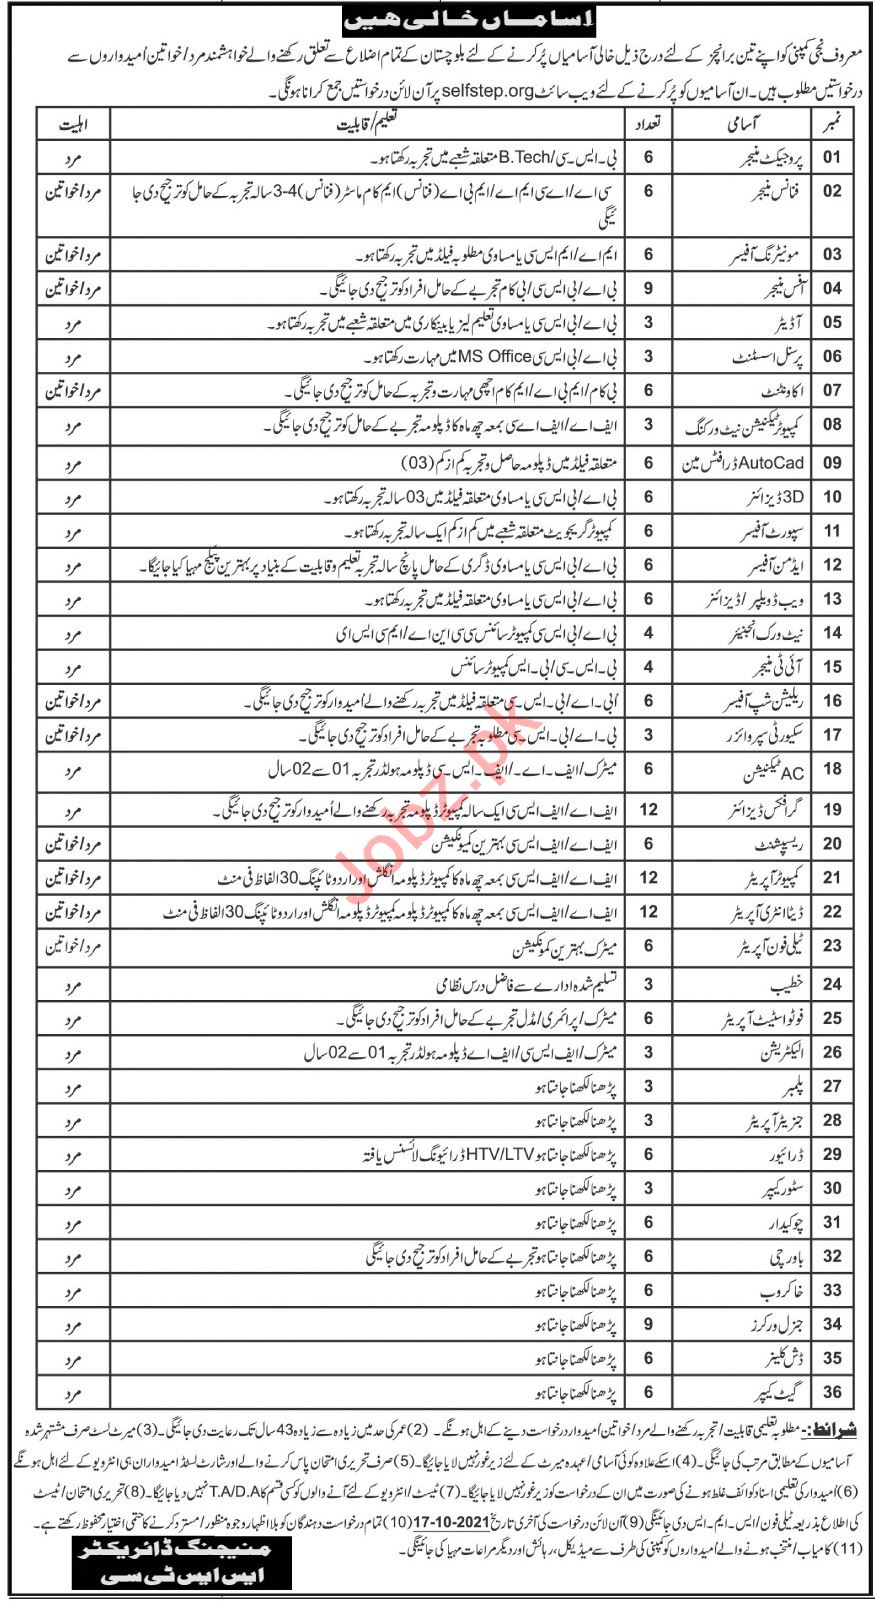 Project Manager & Finance Manager Jobs 2021 in Balochistan